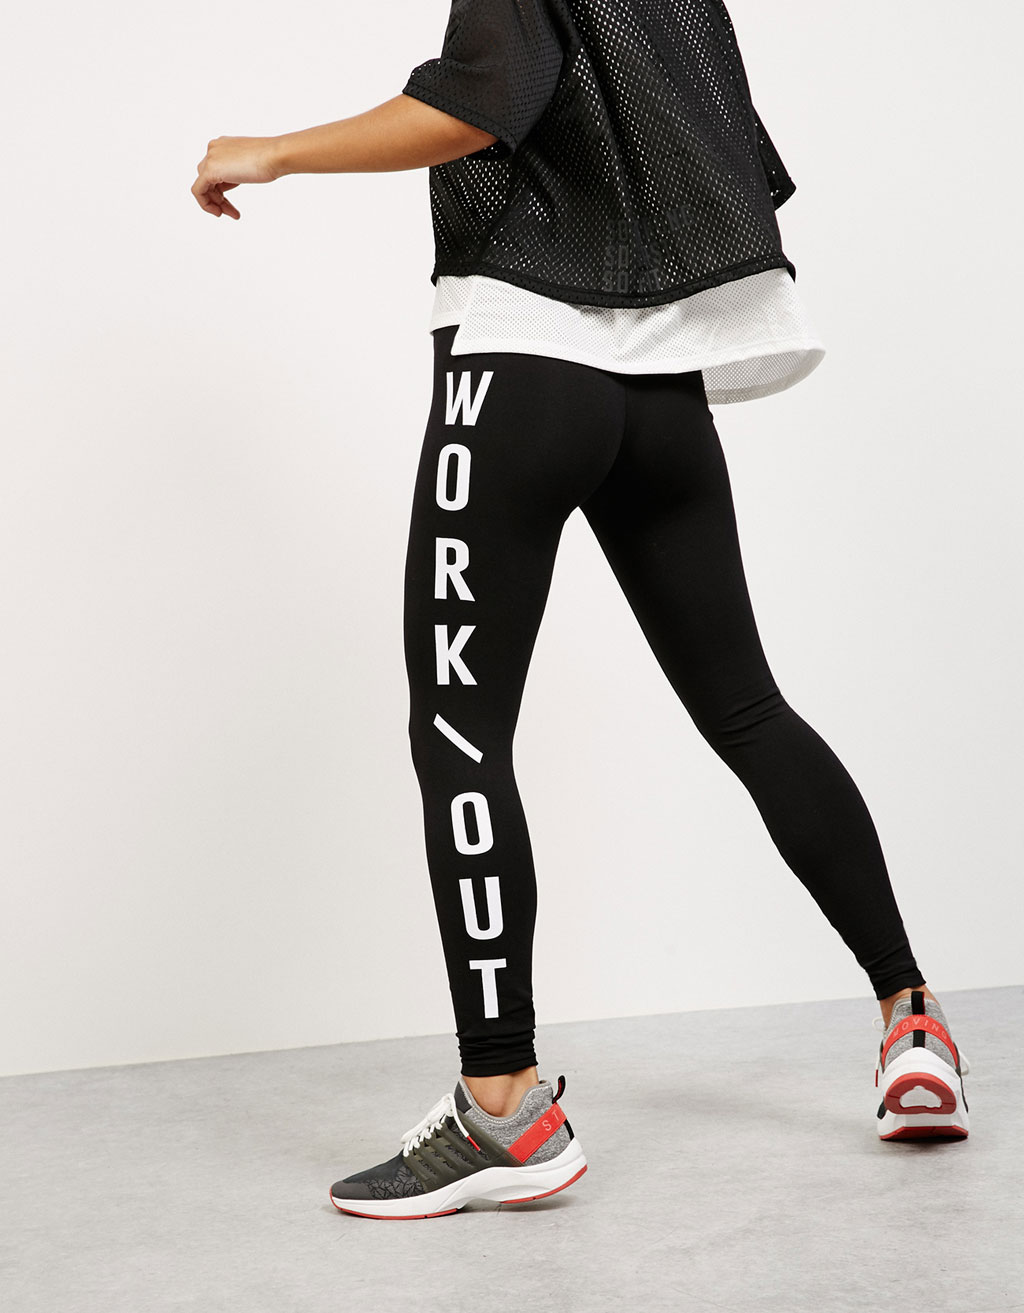 'Moving' technical sports leggings